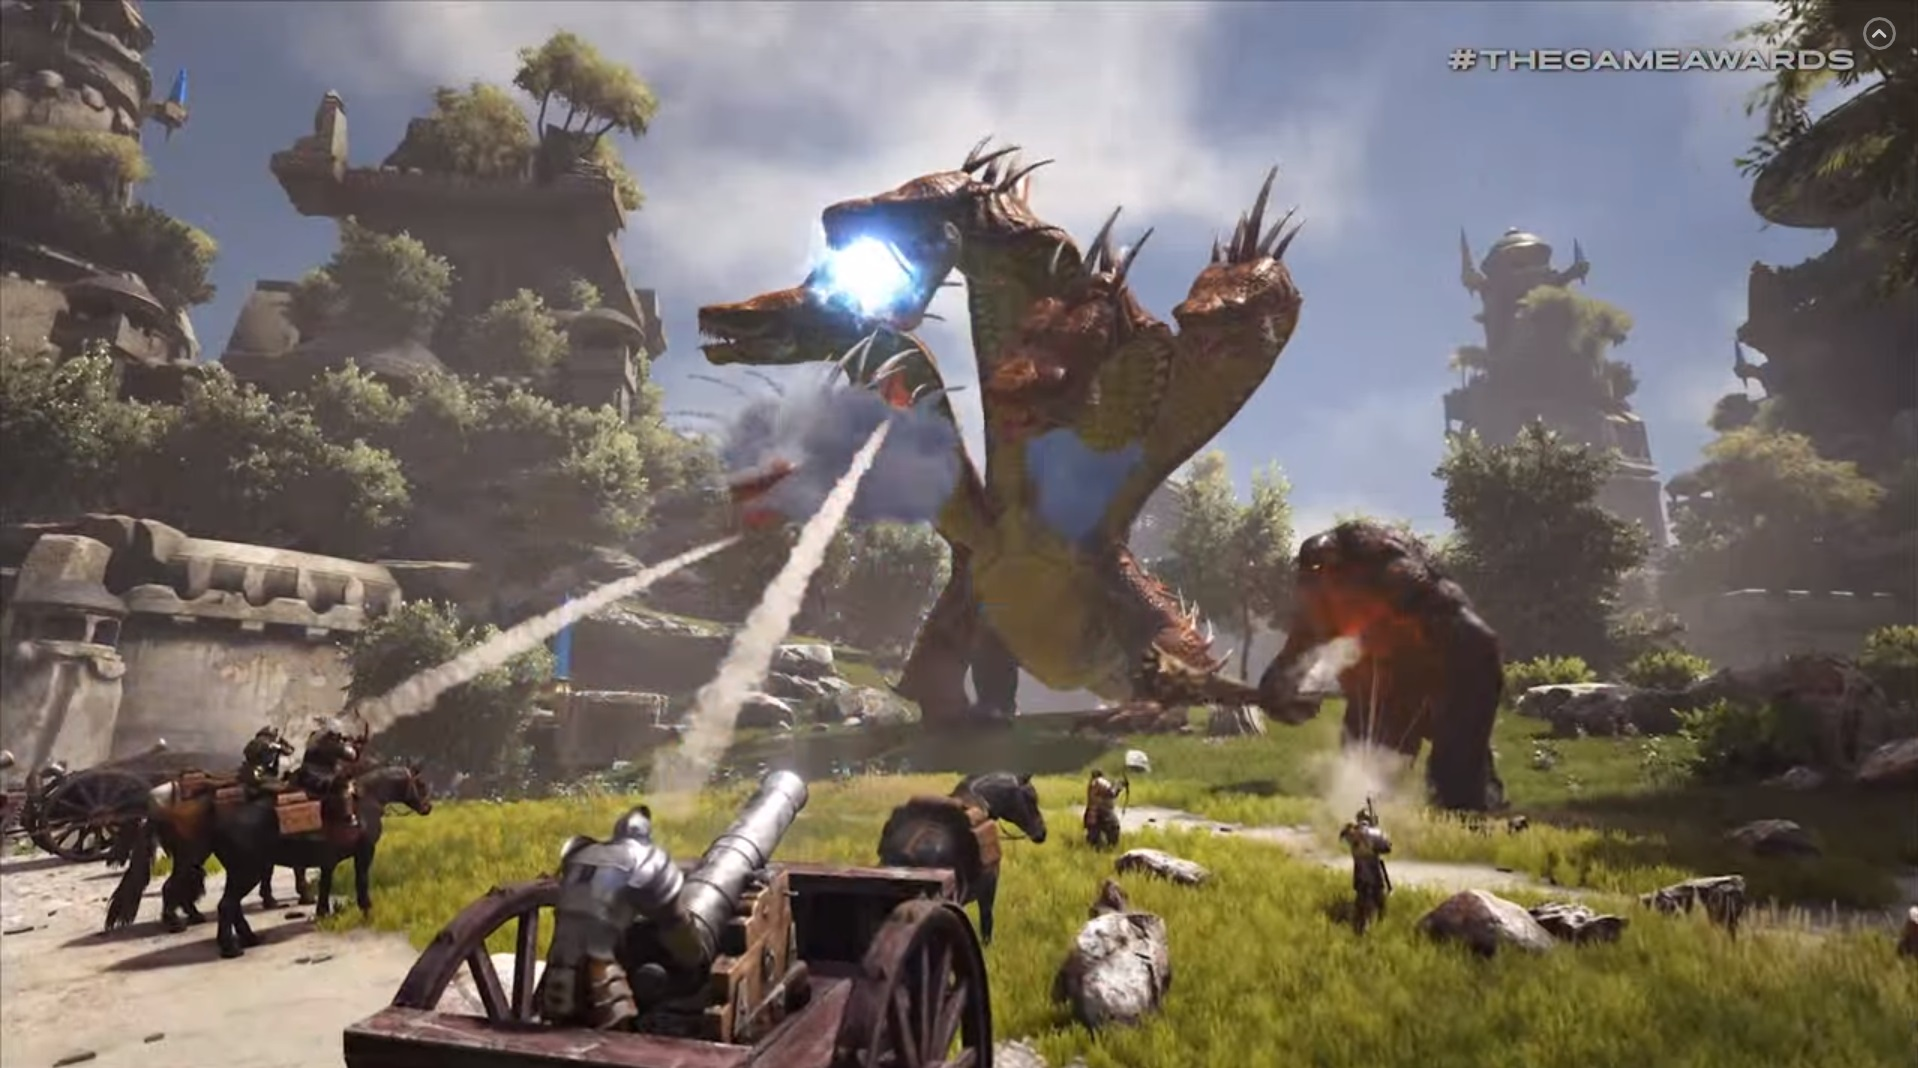 Atlas is a new gigantic survival MMO from the ARK: Survival Evolved team screenshot